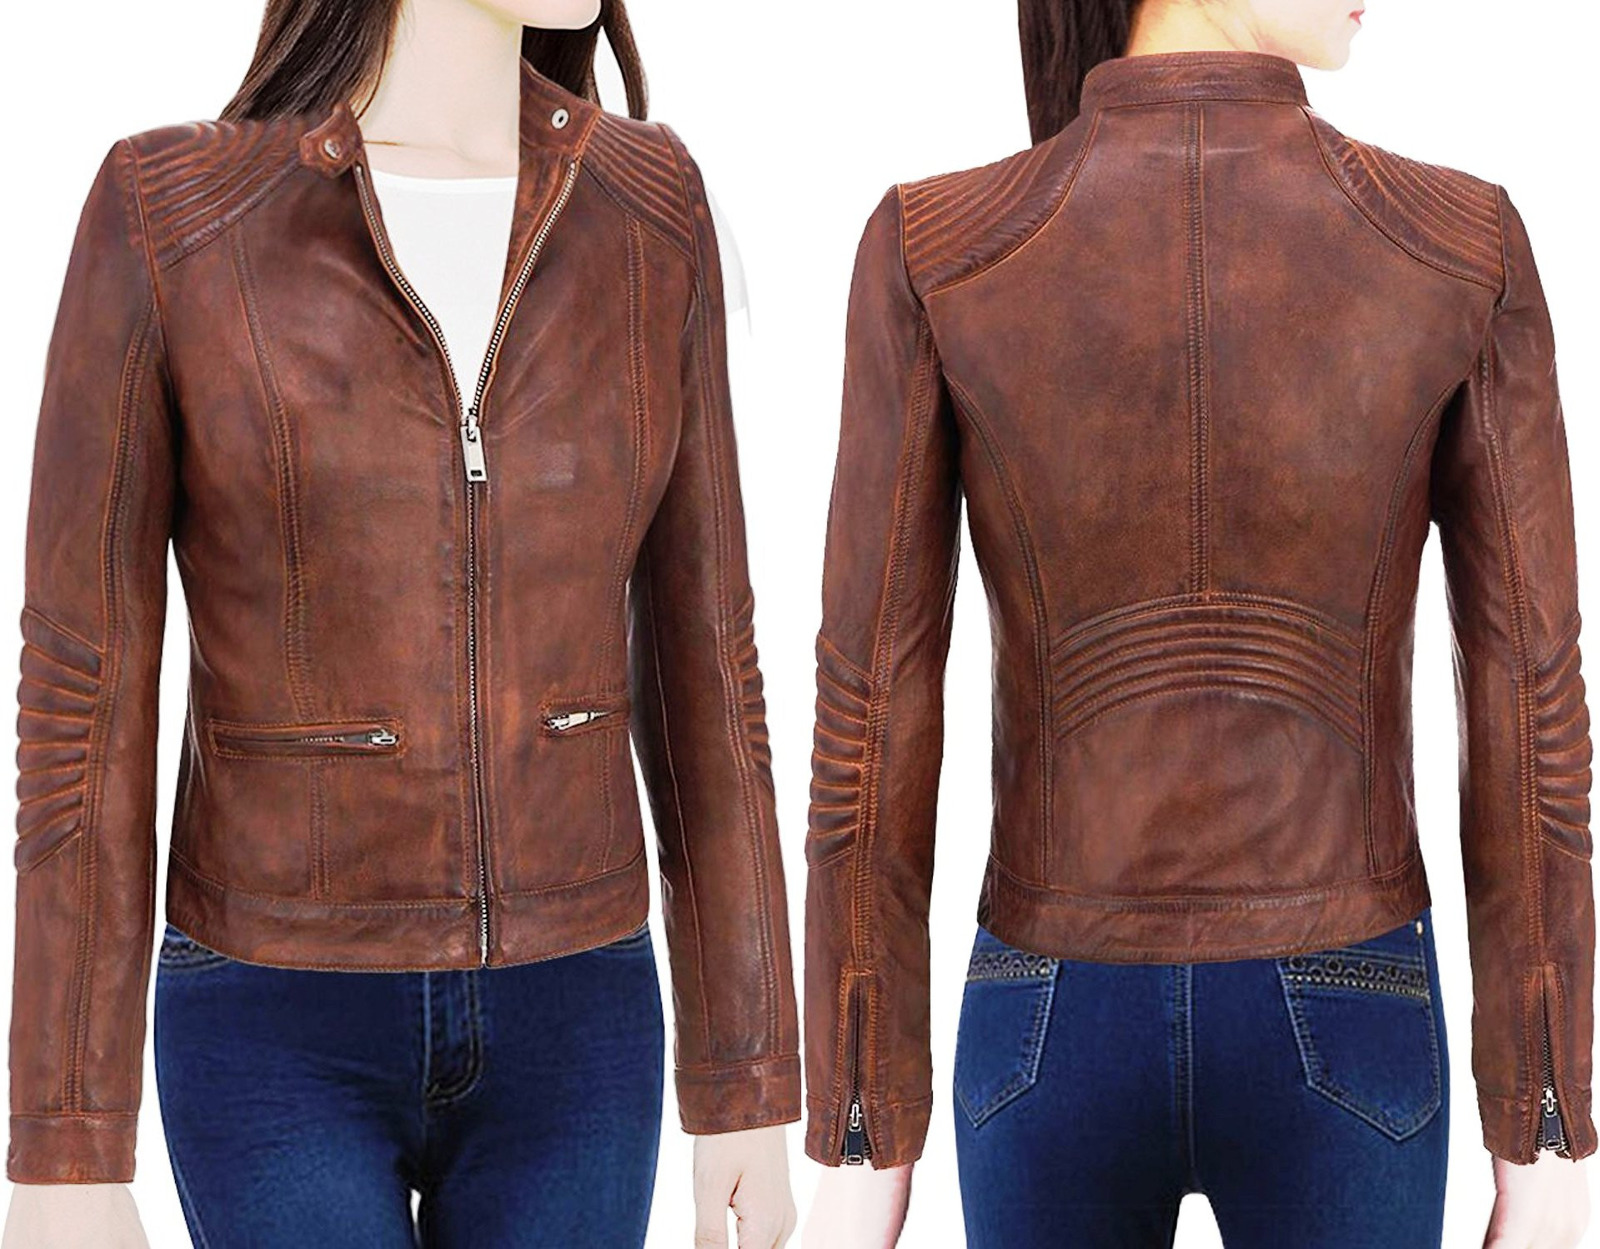 27d956e16 Cafe Racer Moto Biker Distressed Brown Vintage Leather Jacket for Female